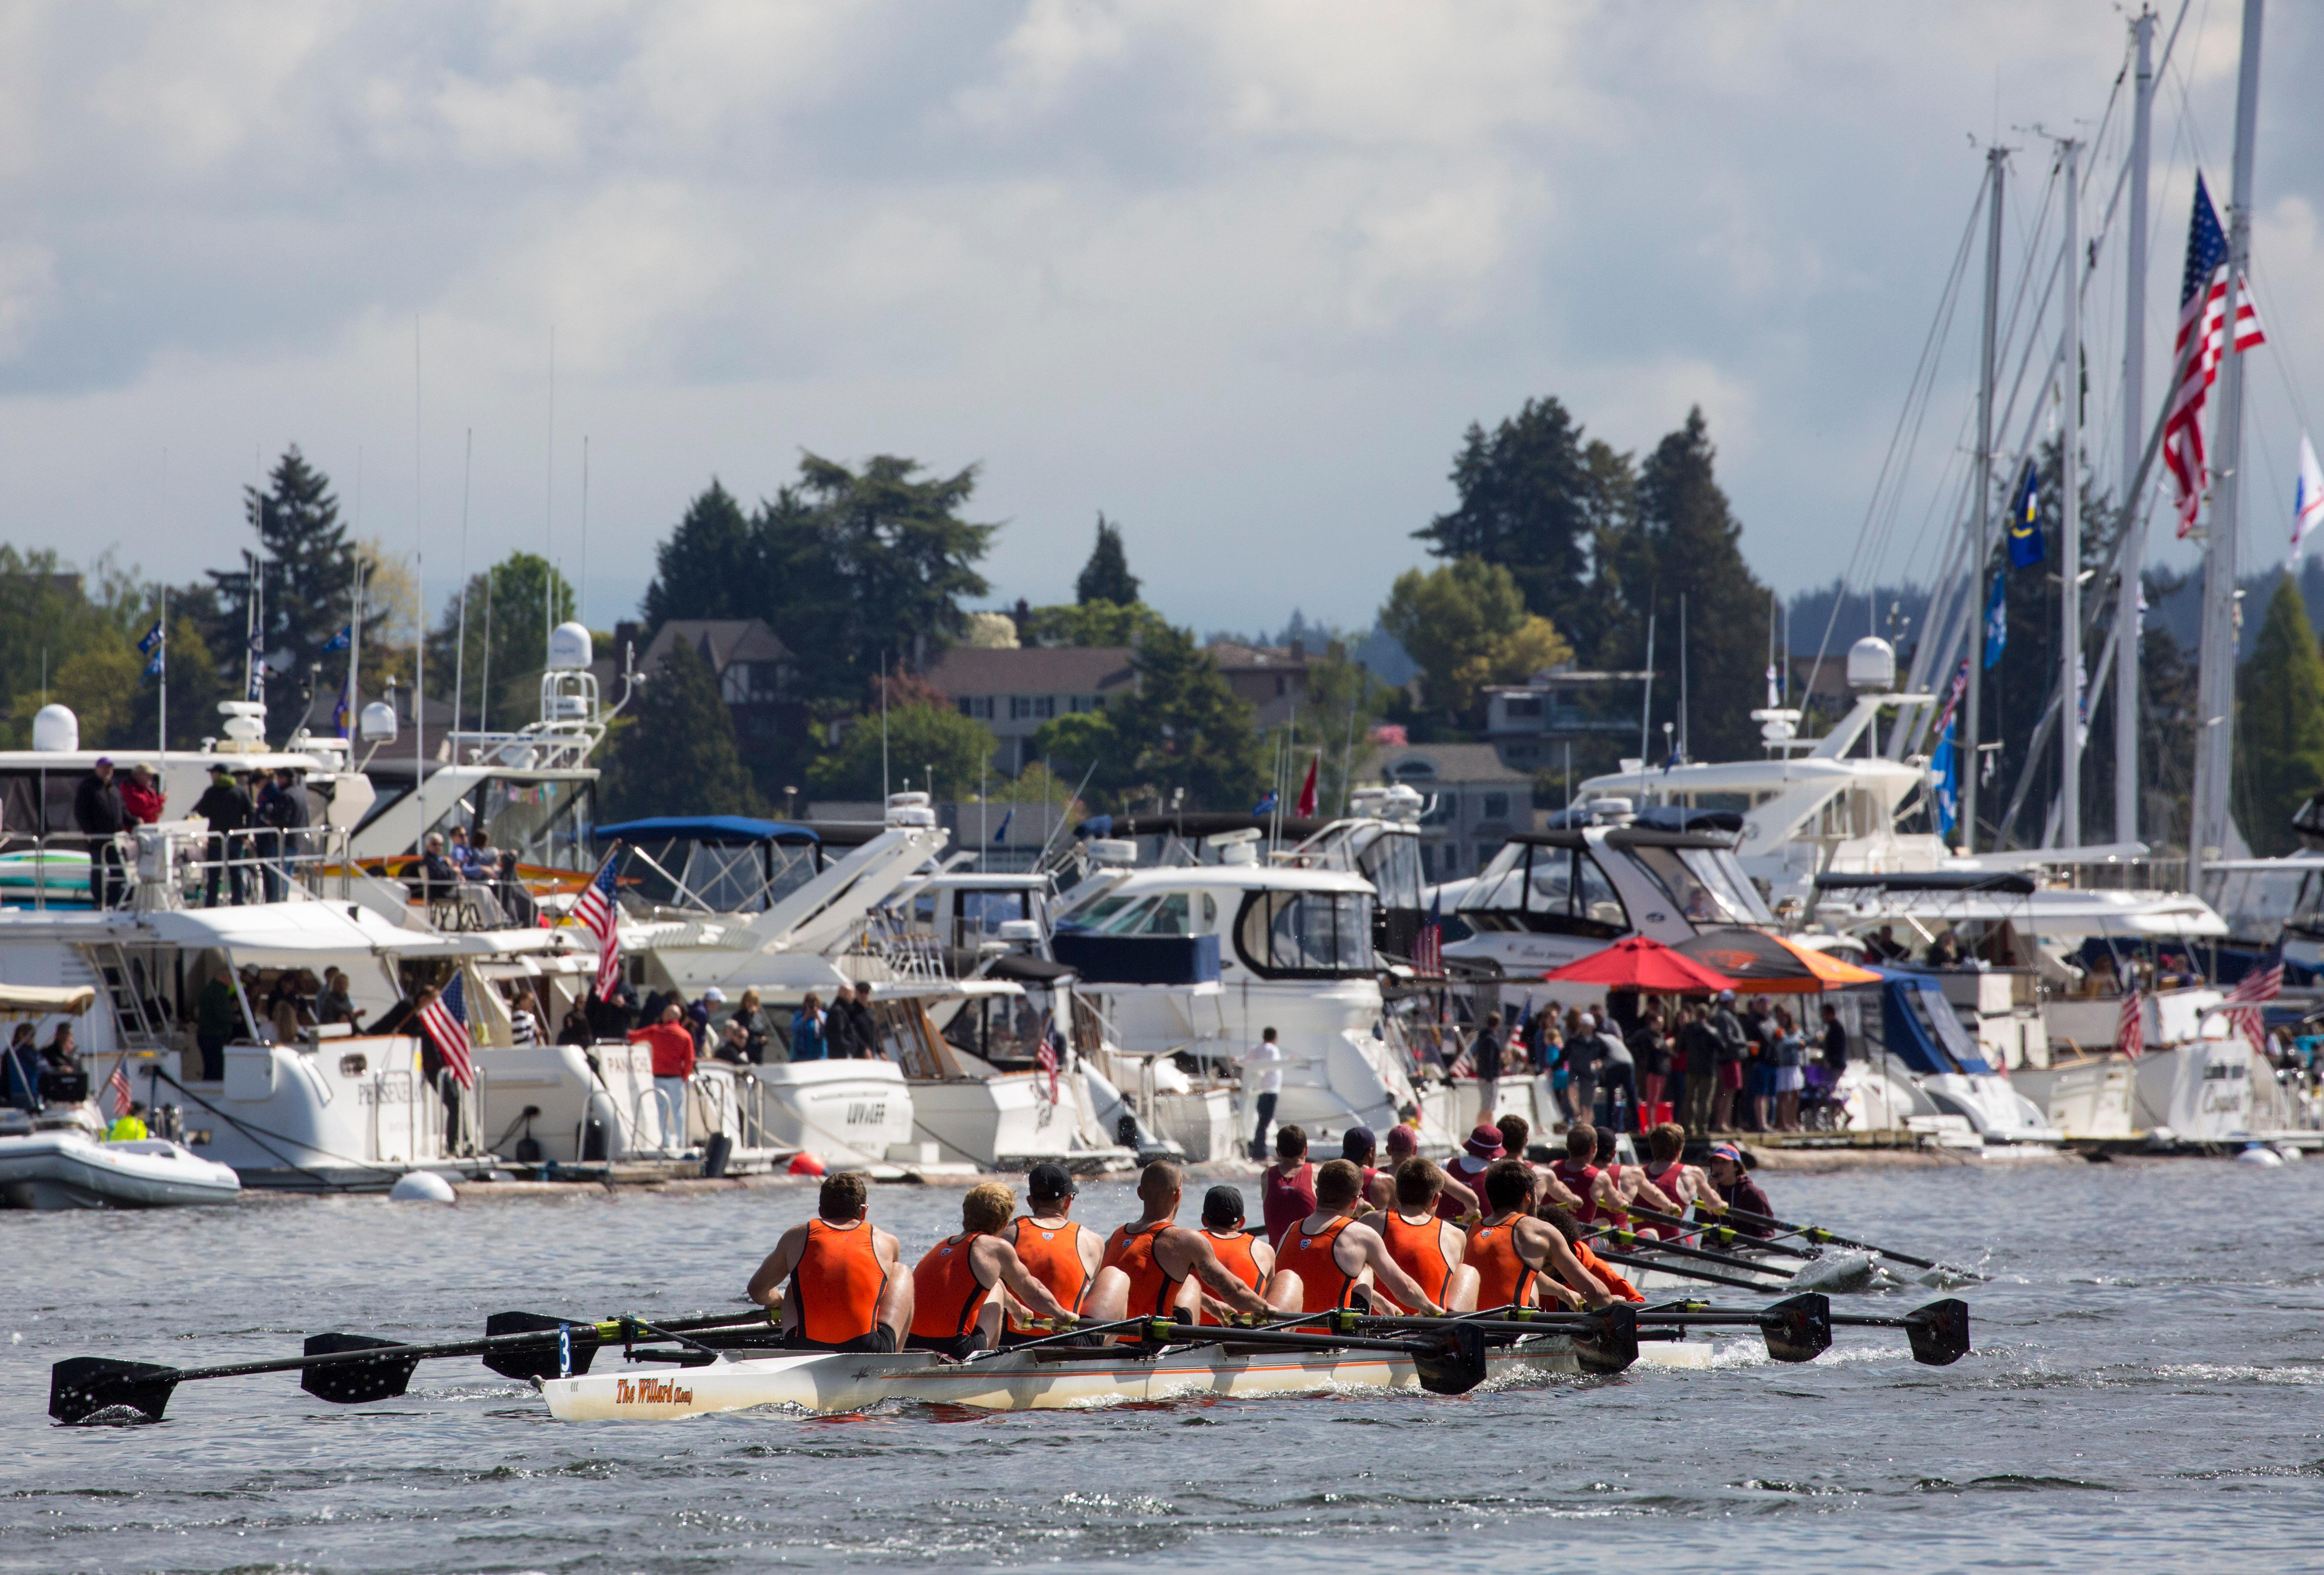 Seattle Yacht Club Opening Day is always the first Saturday in May, and marked with by the Windermere Cup crew races, sailboat races and the Opening Day Parade. It's easily become the nation's largest regional celebration of water, spring and the opening of boating season. (Image: Sy Bean / Seattle Refined)